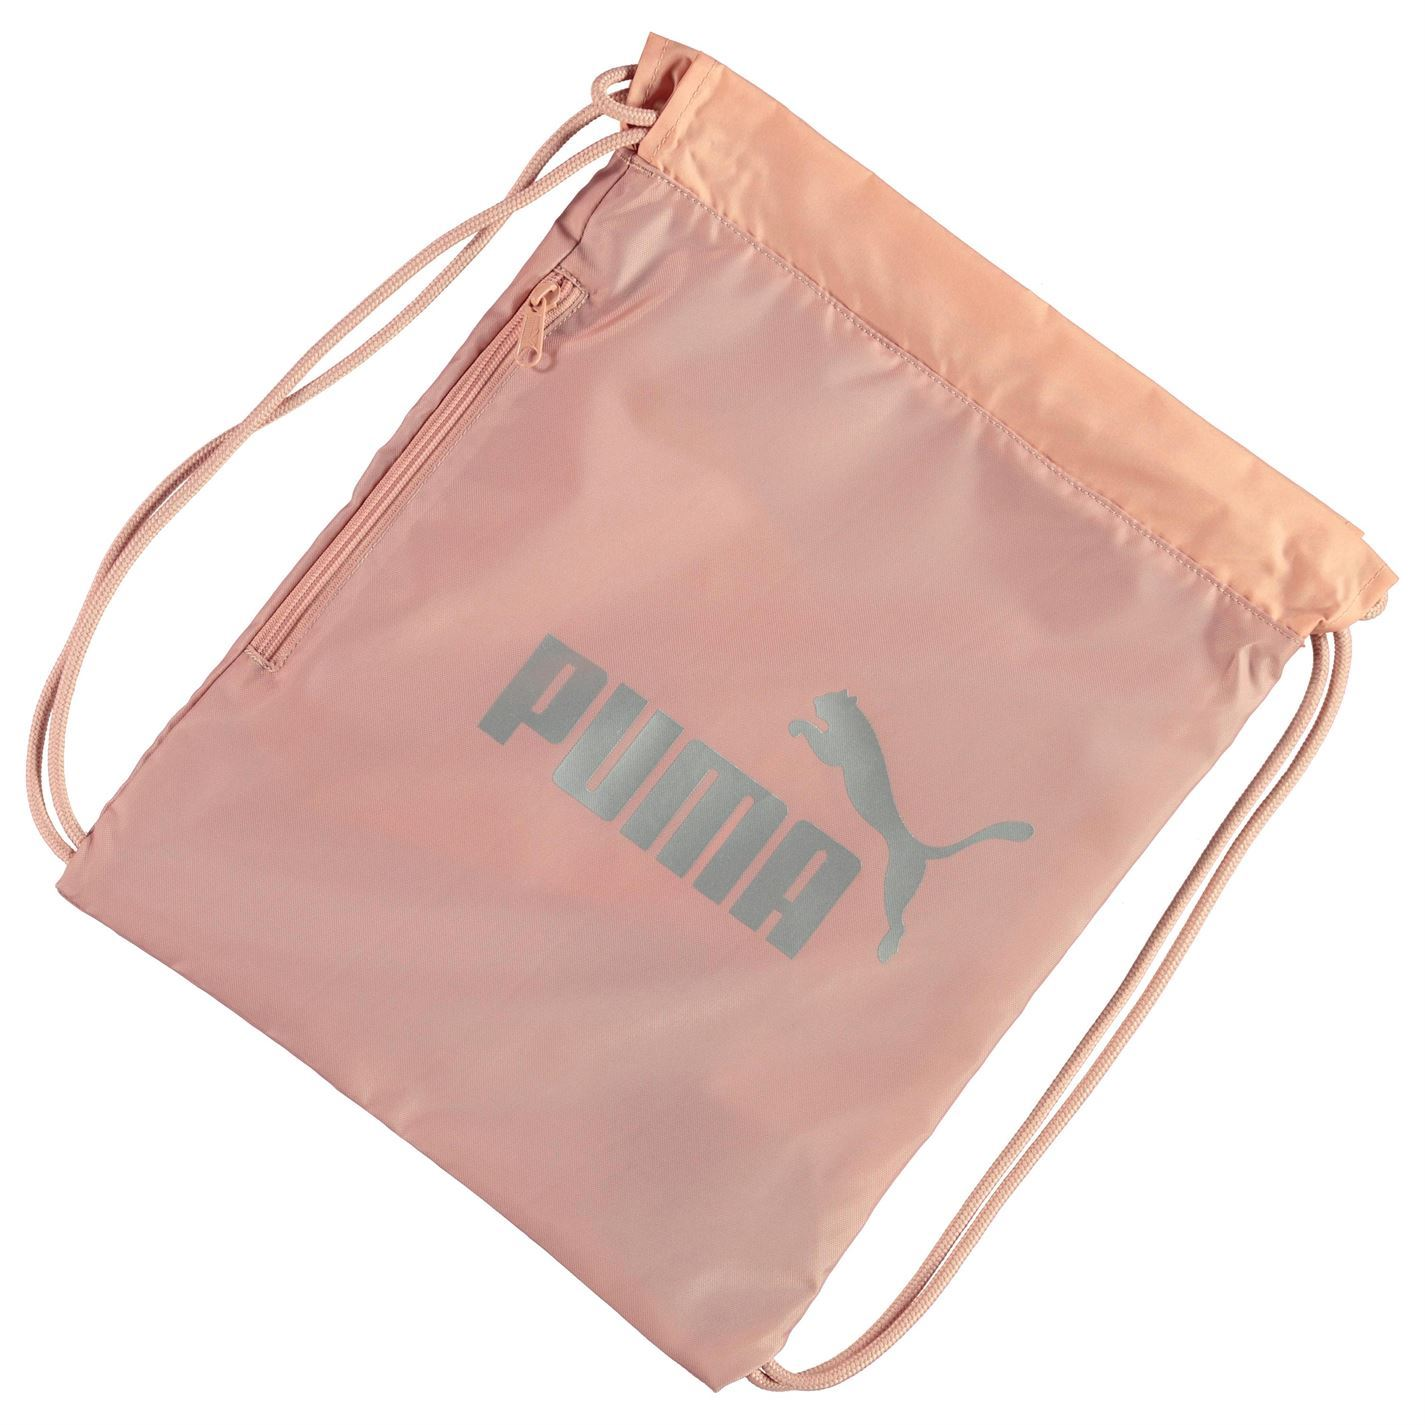 Puma Womens Gym Bags | Sabis Bulldog Athletics